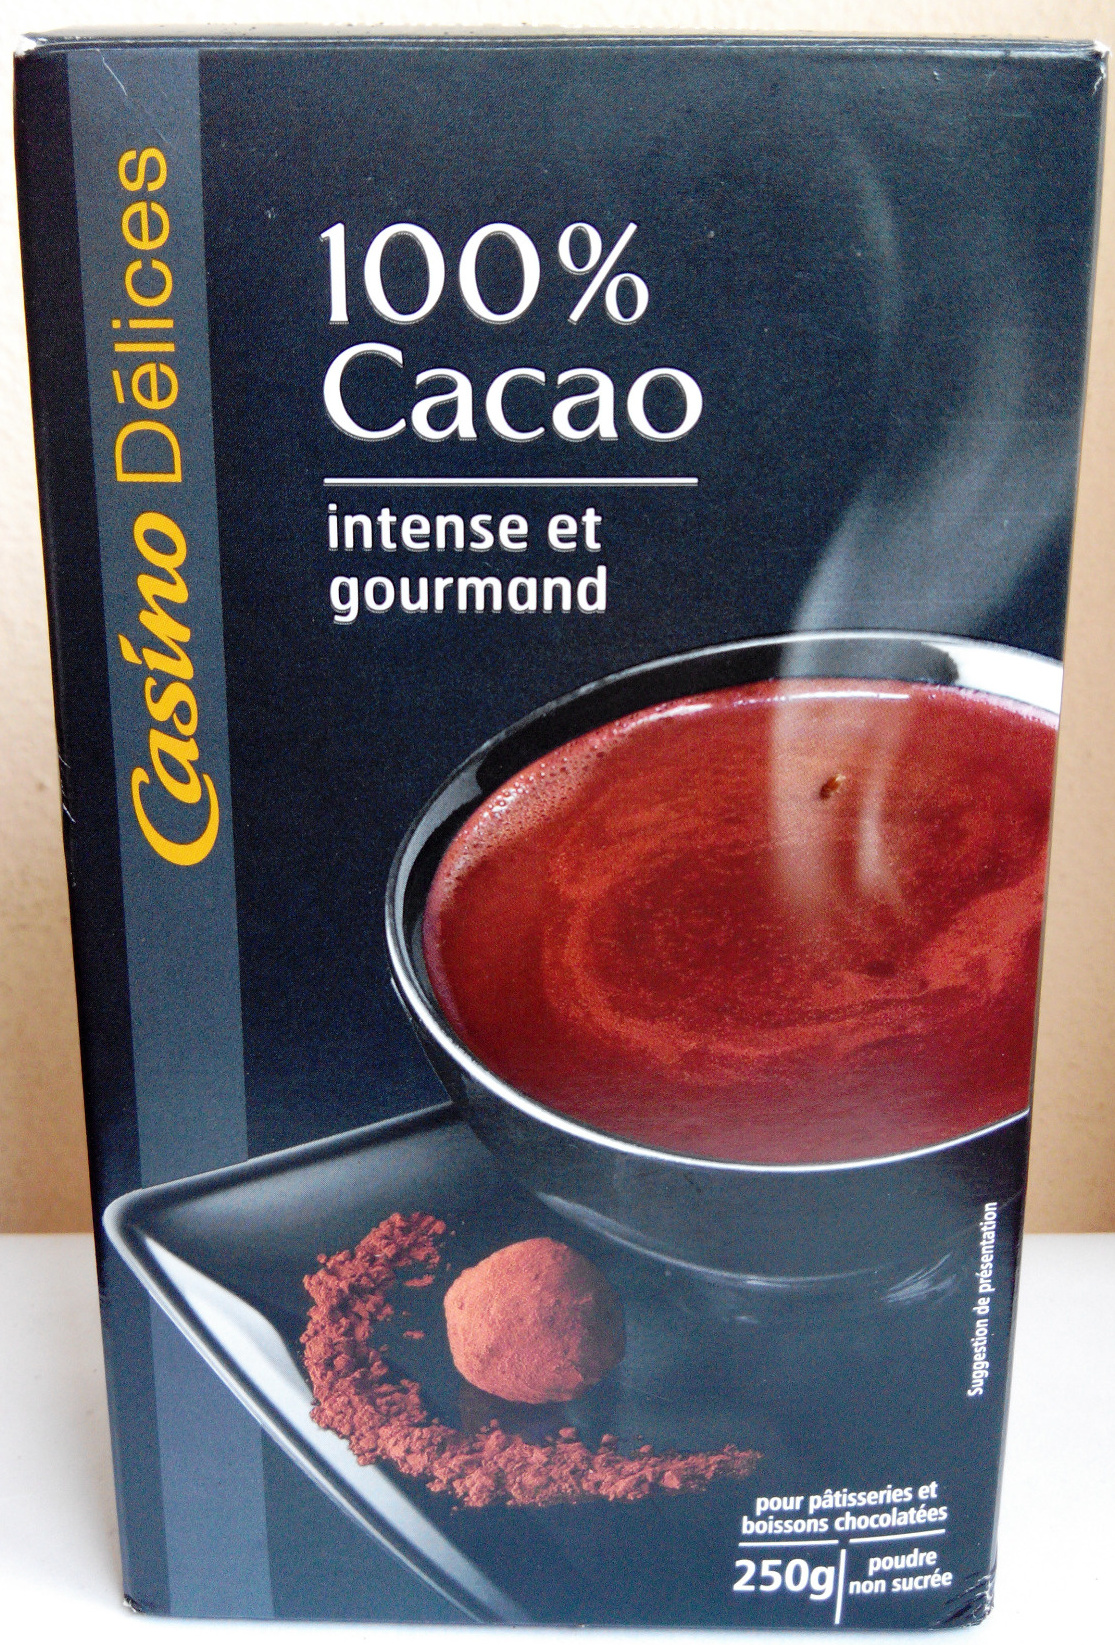 100% Cacao - Product - fr